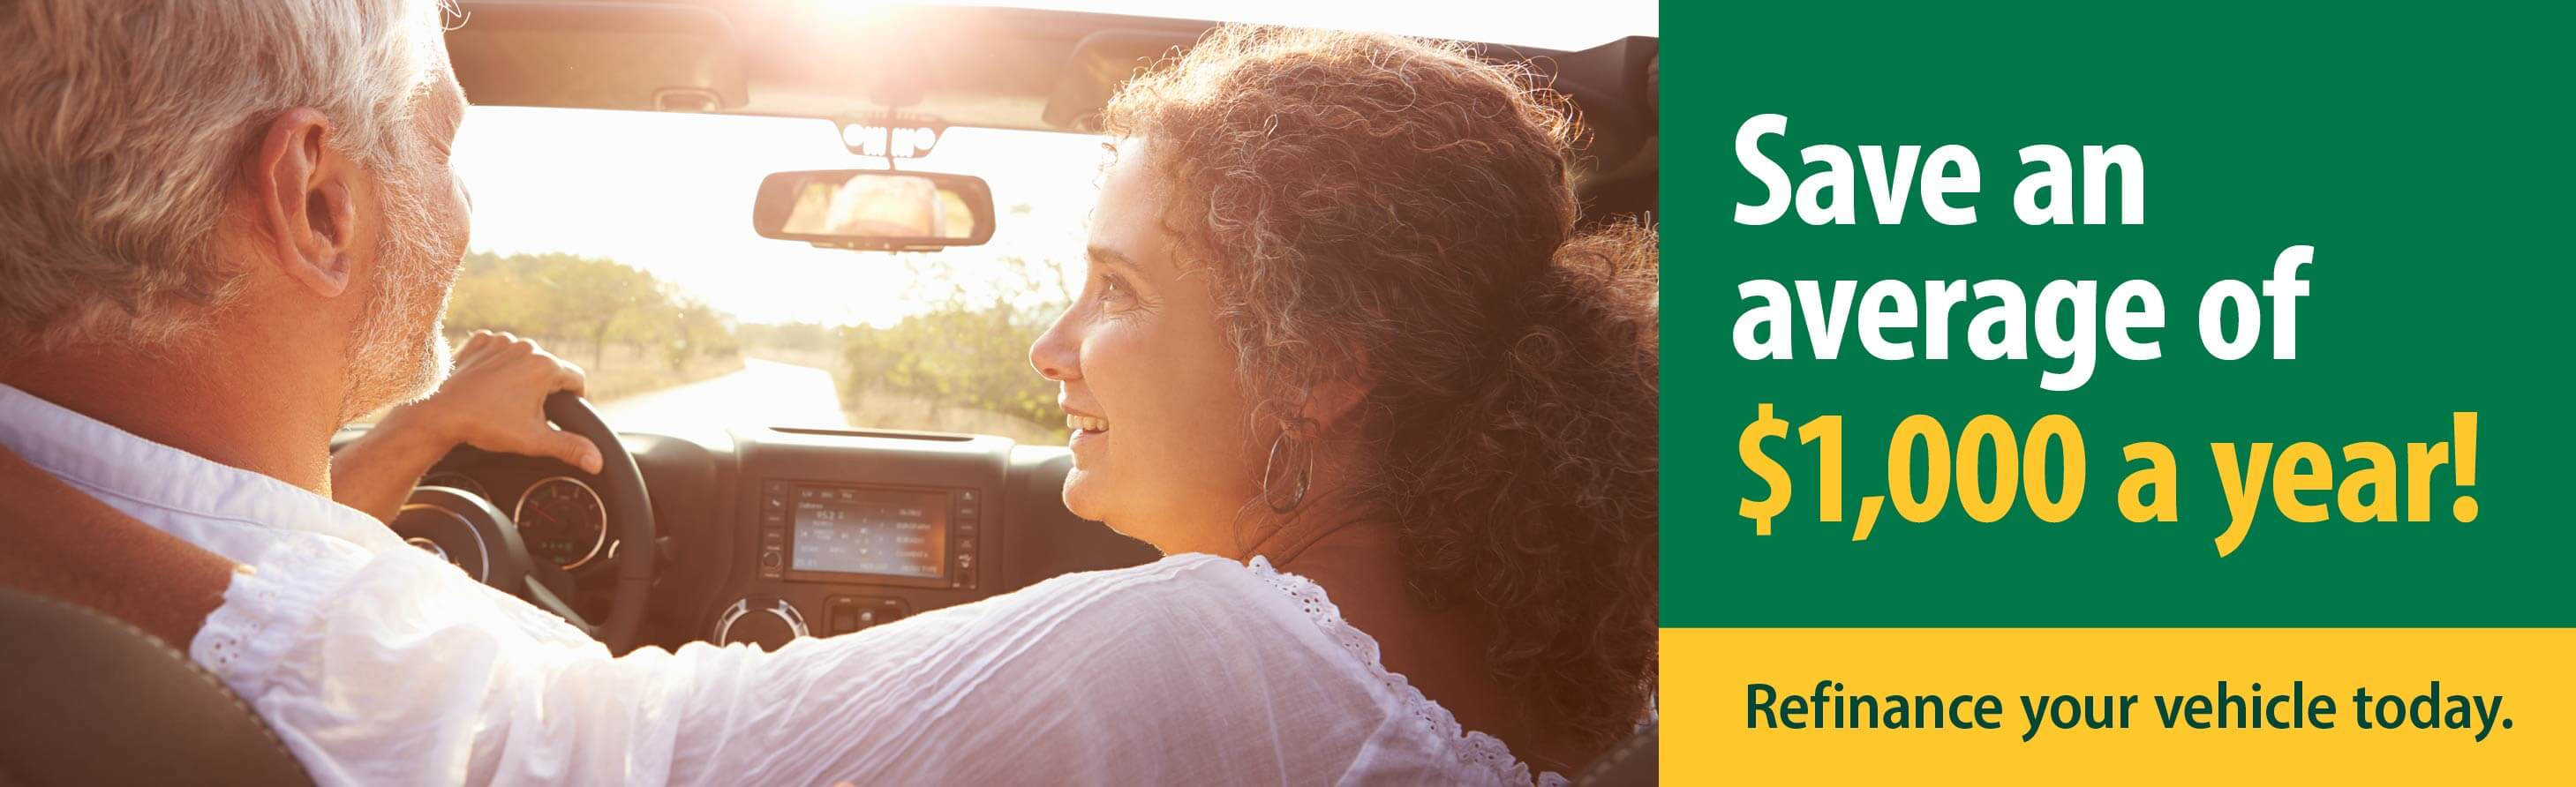 Refinance your vehicle and save!